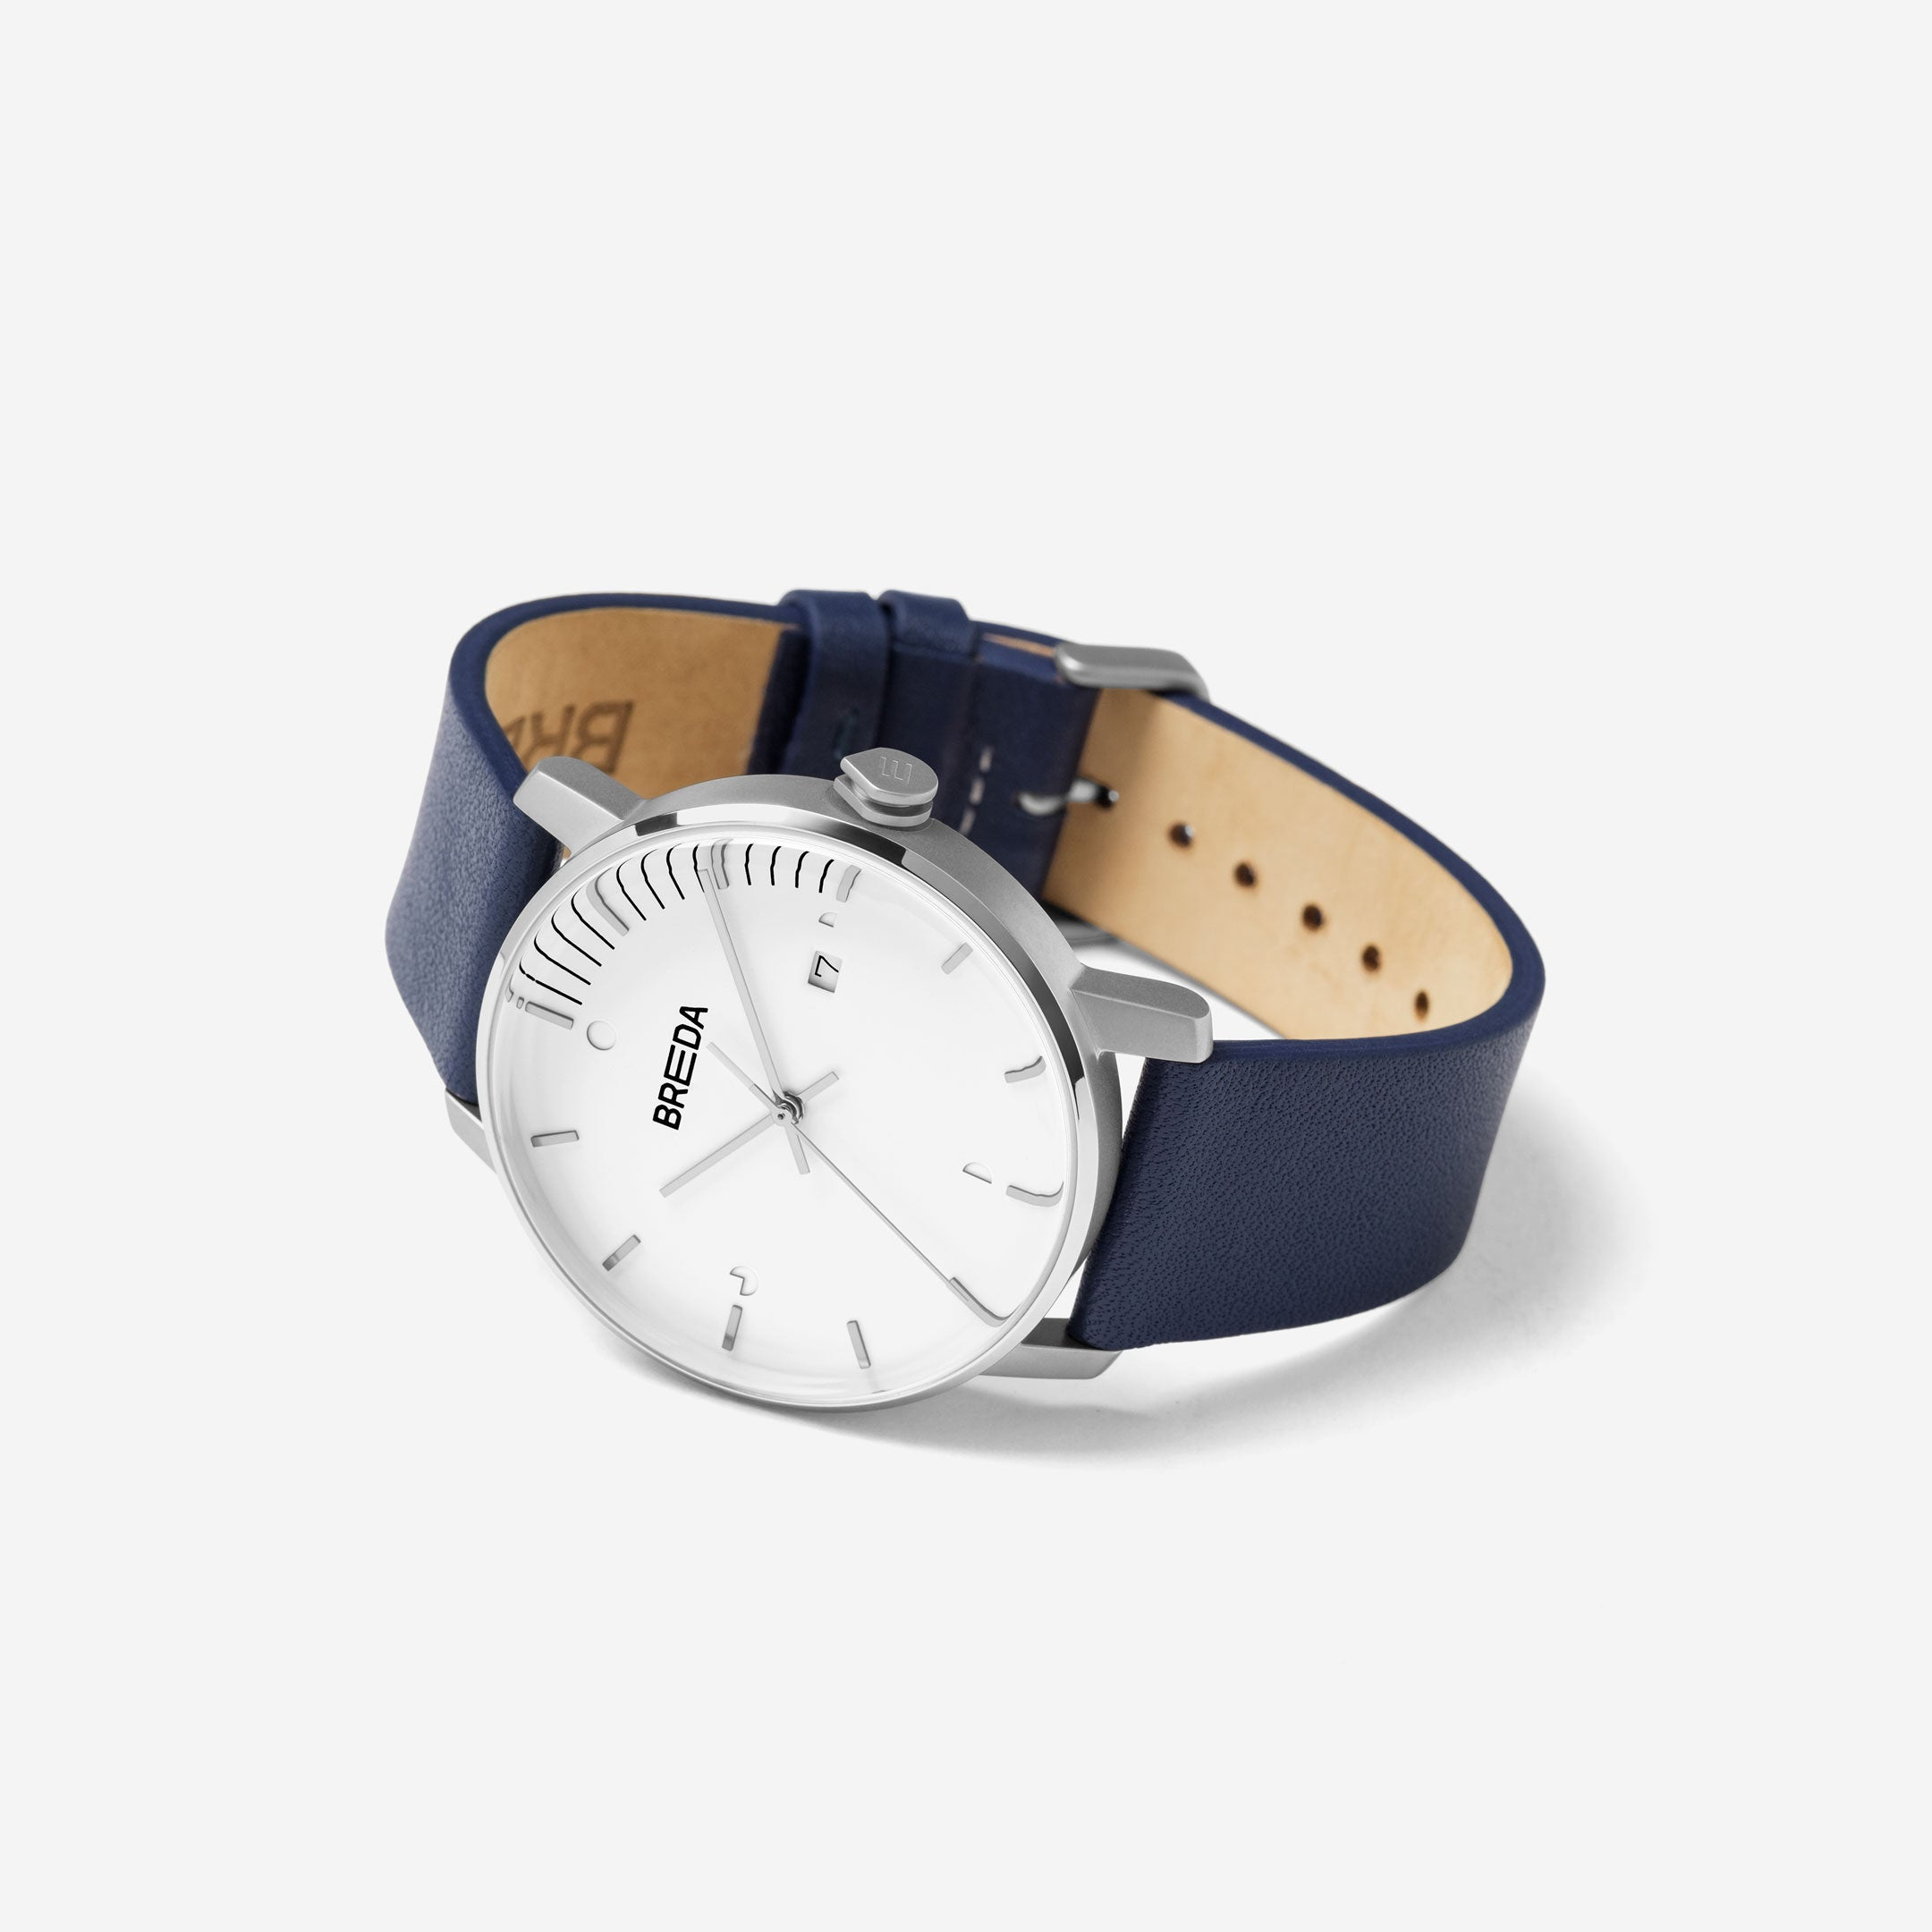 //cdn.shopify.com/s/files/1/0879/6650/products/breda-phase-9000e-silver-navy-watch-angle_1024x1024.jpg?v=1491411930